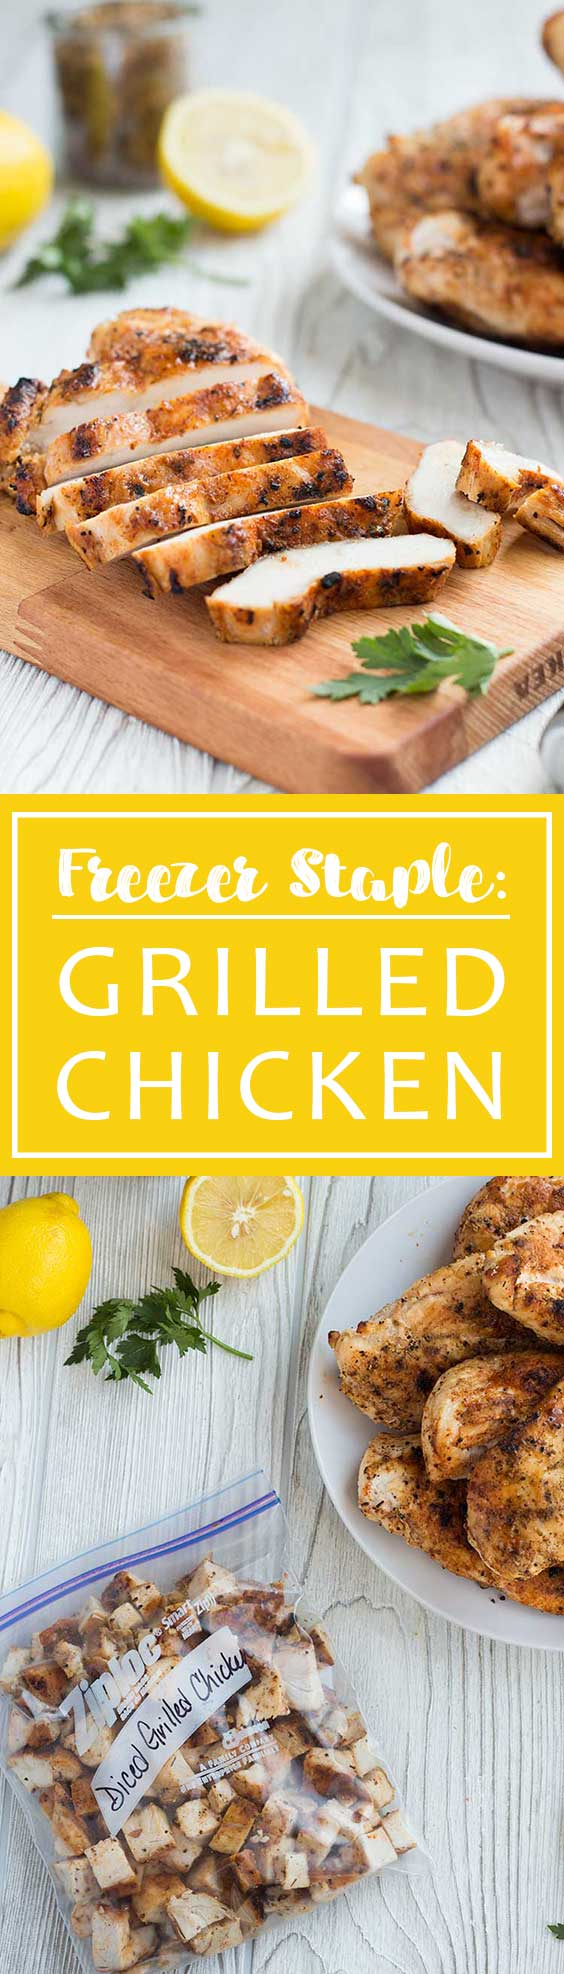 Grilled Chicken Pinterest Pin